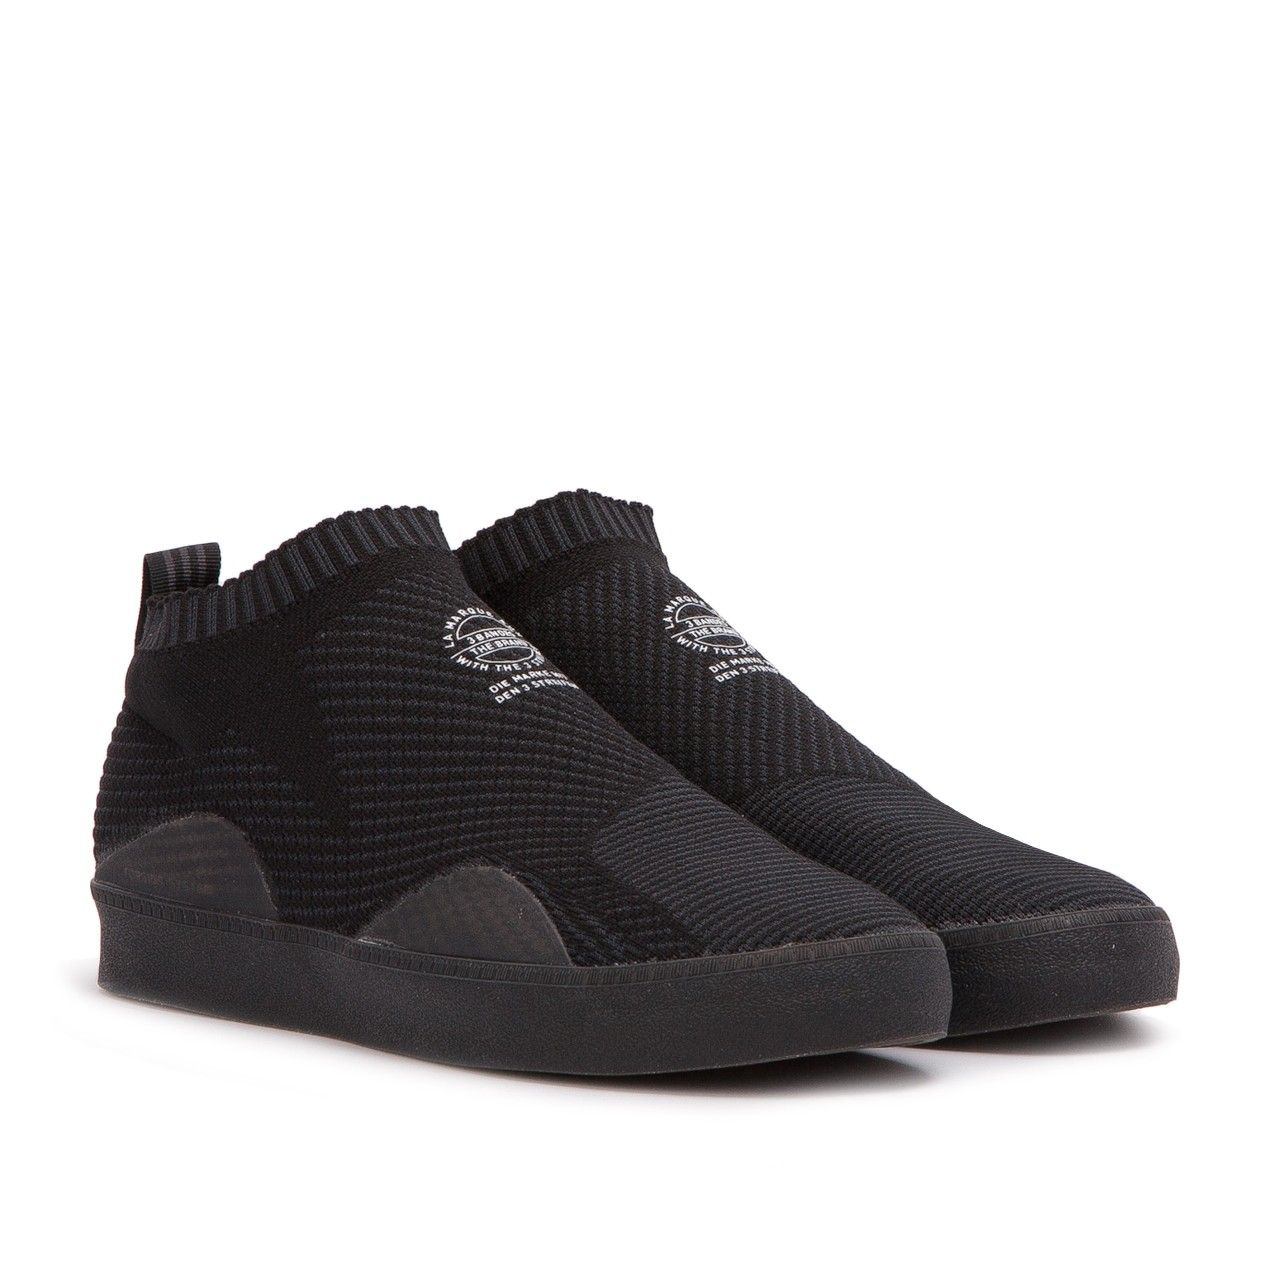 new style 9a408 0b8ae adidas 3ST.002 Primeknit (Black) and many other Sneakers from a selection  of over 30 Sneaker brands at the Allike sneaker shop, world wide shipping